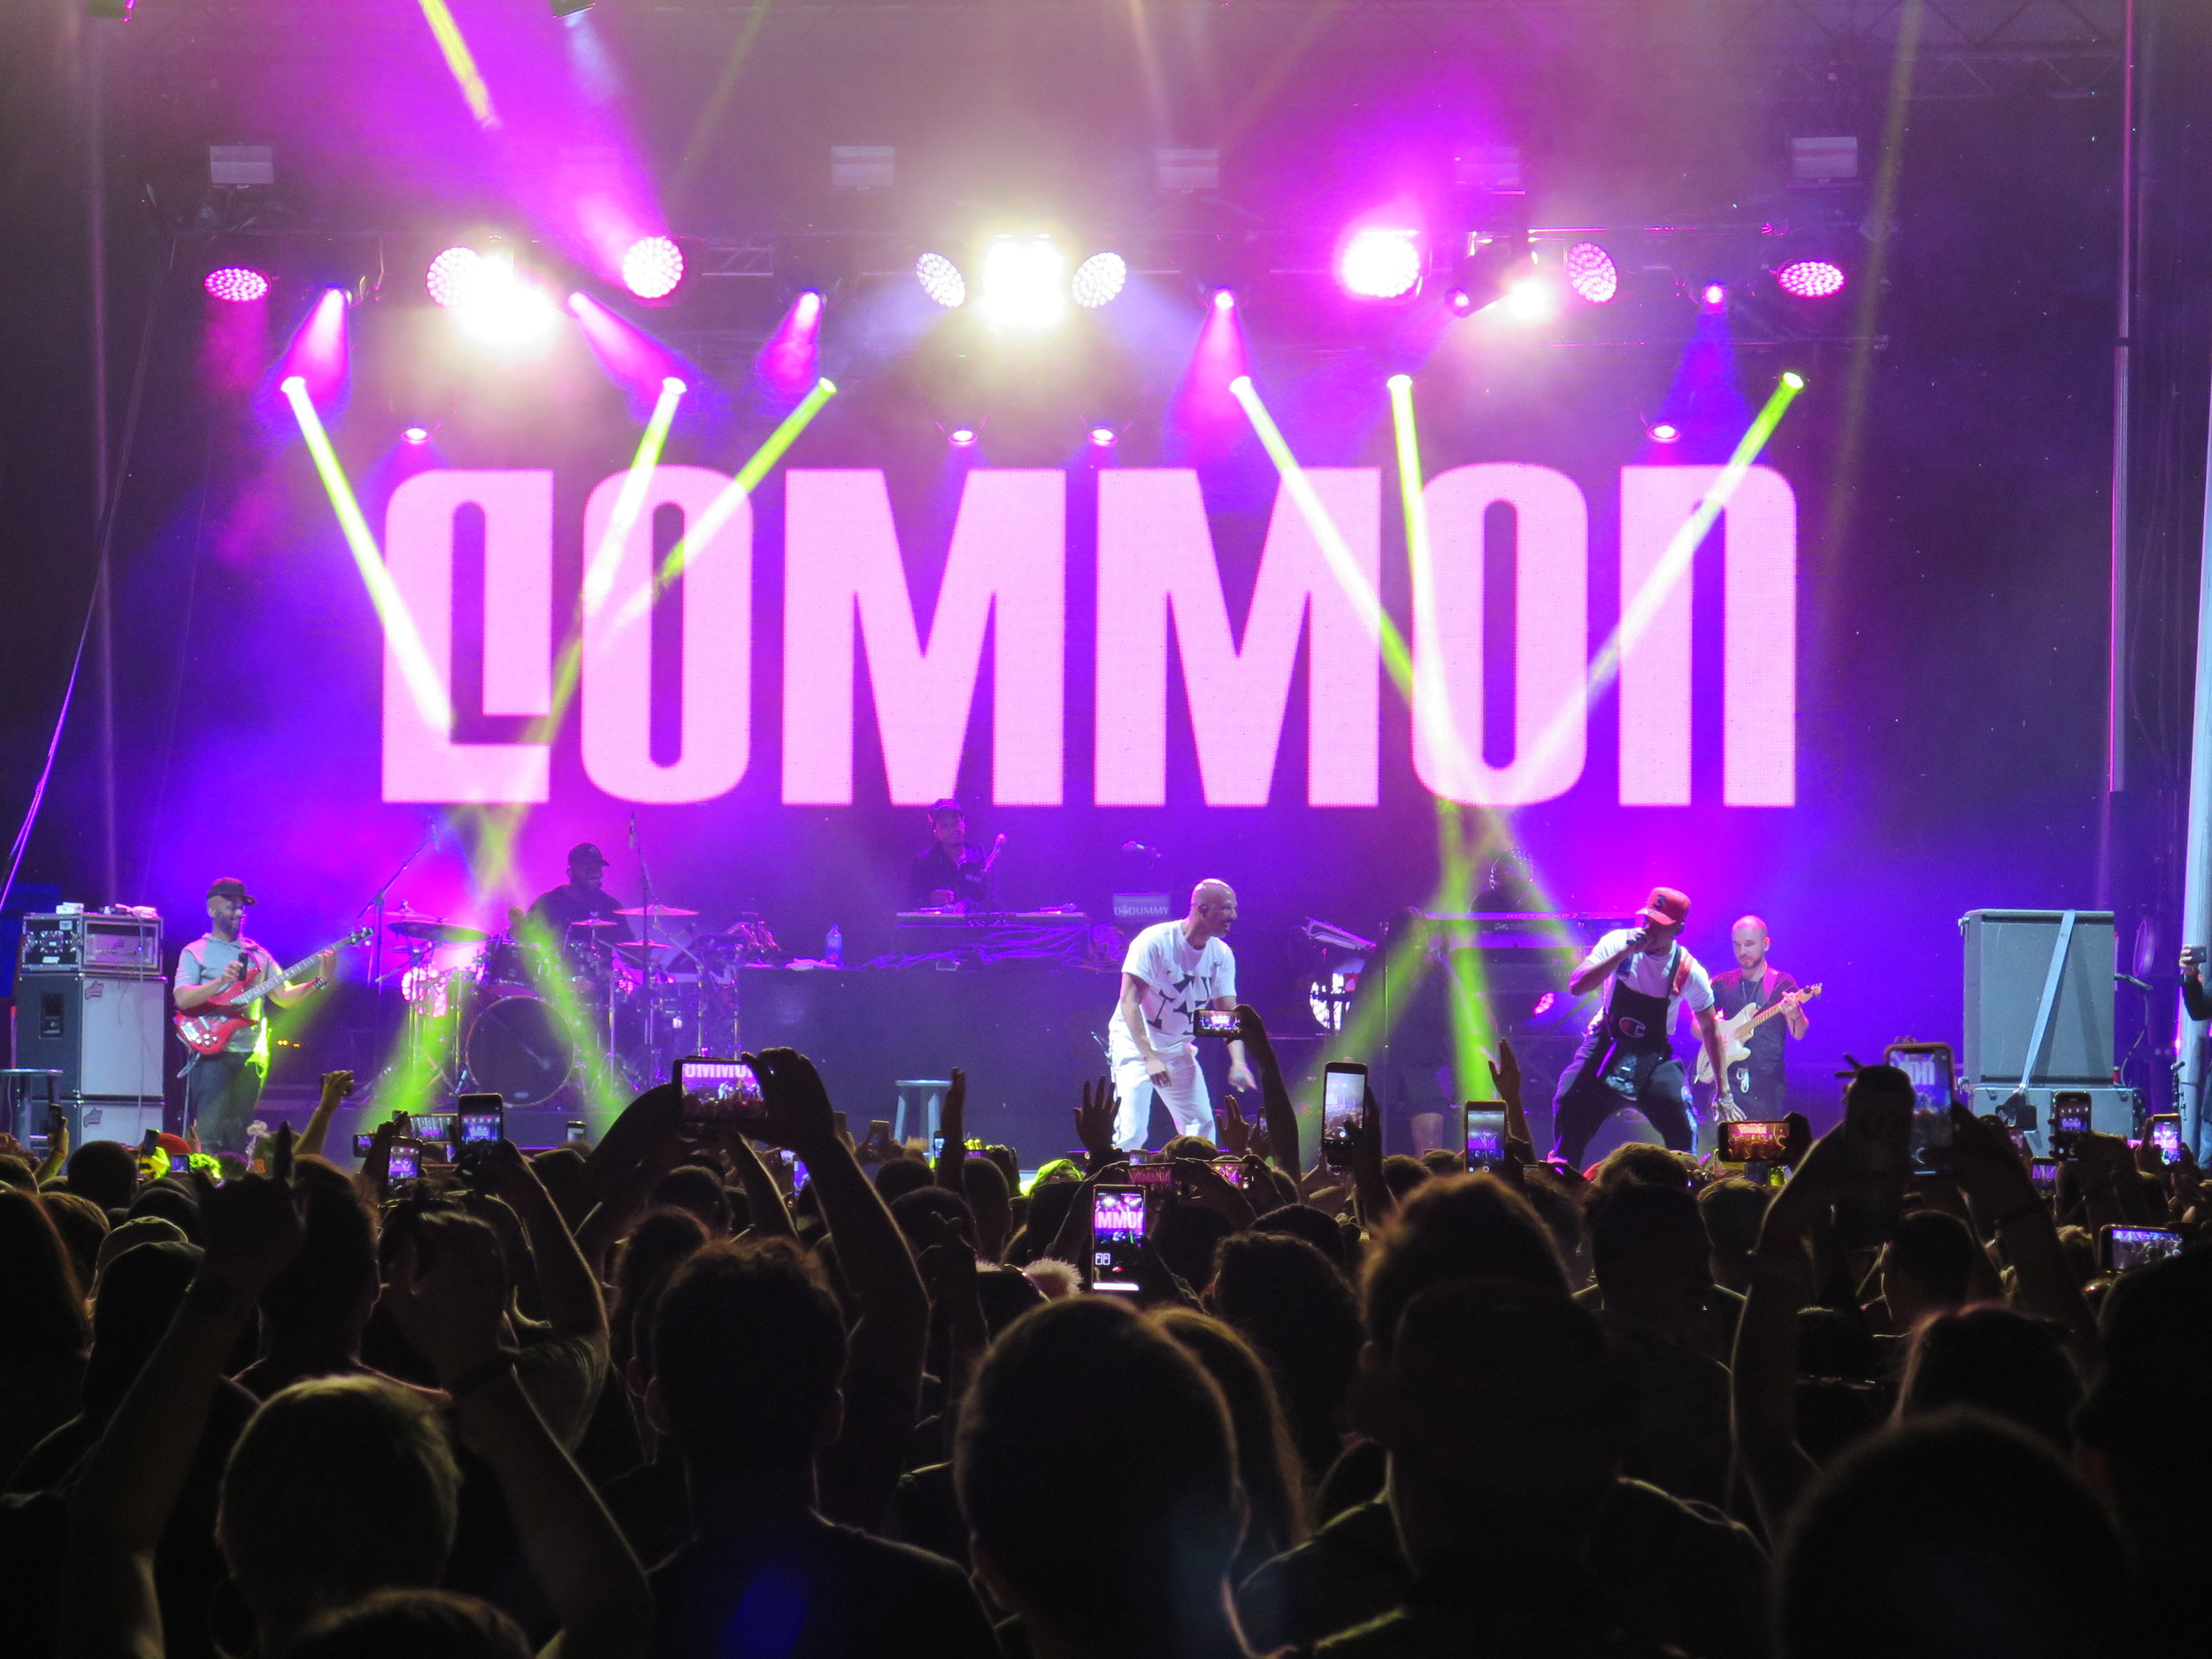 Common / Tune Yards / Towkio / CupcaKKE / Grandson - Mamby On The BeachJune 23rdissue # 17My first experience with Mamby On The Beach was a success. Grandson kicked us off and set the bar high enough to match his energy. CupcaKKe raised her own bar and peeked through her blonde curls to rap about her pussy's desires. Towkio and his braids and bounces were even better in person than I had hoped (I was hoping Chance would join for this set…). Merrill Garbus owned the stage as Tune Yards and held it until she was finished with her set, joining the crowd for an acapella ending after the festival cut the feed to keep events running as scheduled. Common brought the beach down with his tidal wave of a performance, summoning Chance to freestyle at this festival of hometown greats. Grandson is hitting Reggies on March 12. Tix are $15. ($18 at the door). CupcaKKe is coming home to Thalia March 21. Tix are $18. Chance the Rapper is headlining a Night At The Museum event at the Science and Industry Museum tonight December 20th. Tix are $10.-LPLPhoto: LPL